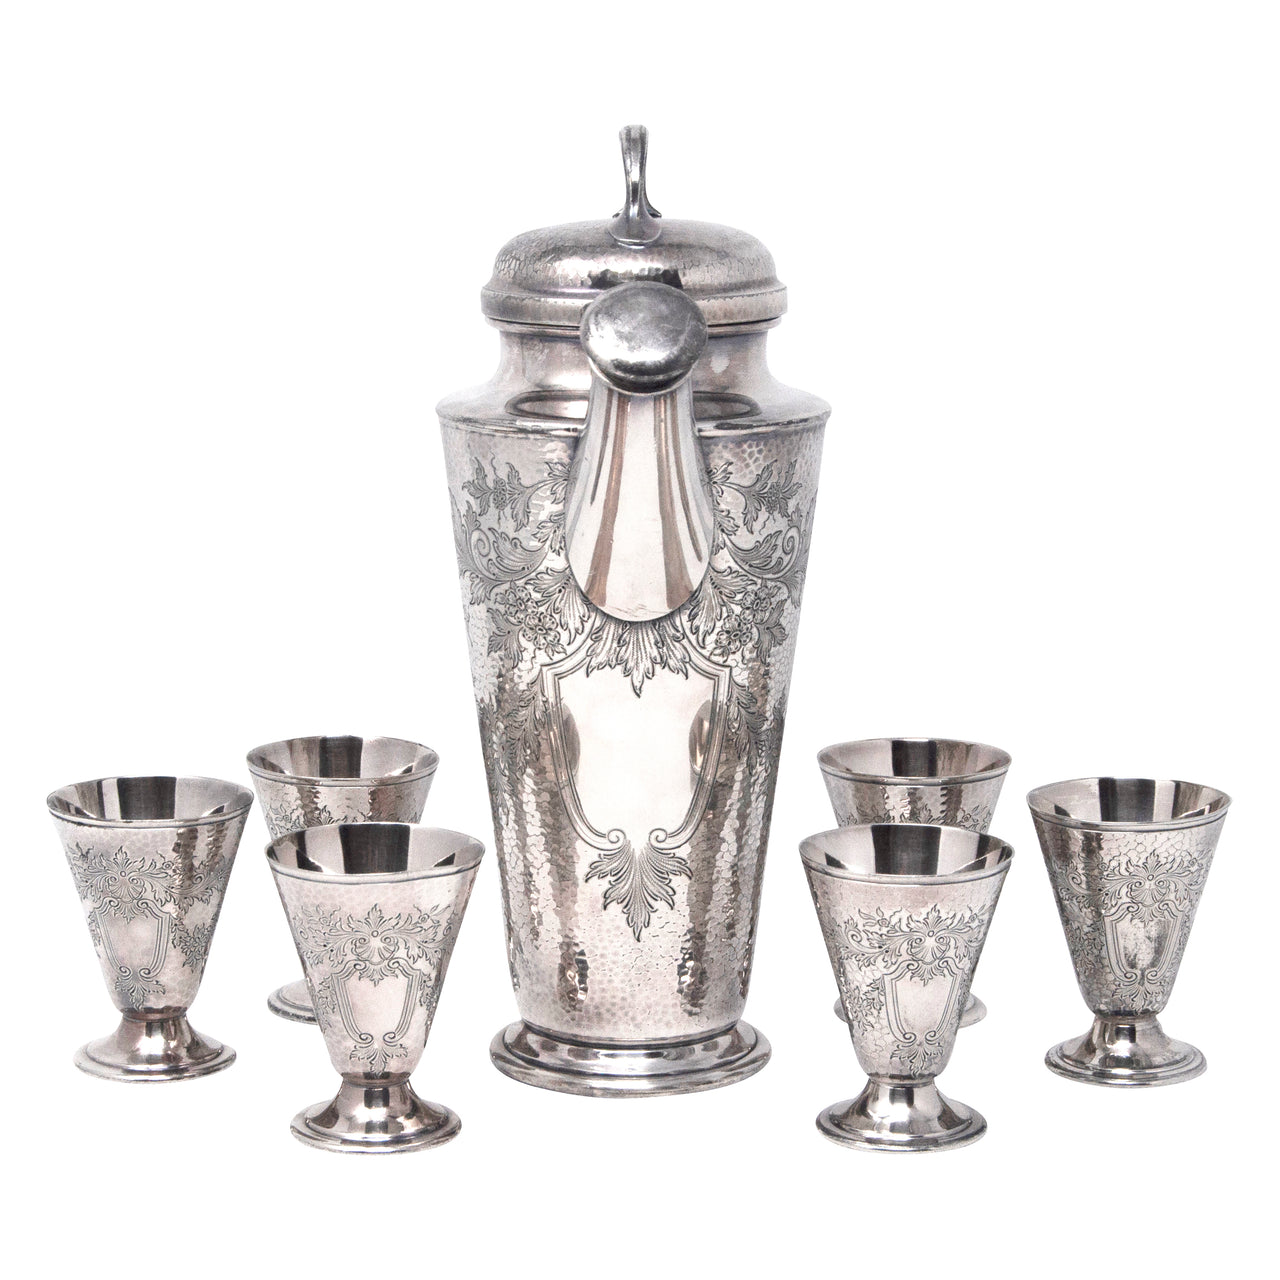 Vintage Reed & Barton Hammered Silver Plate Cocktail Shaker Set | The Hour Shop